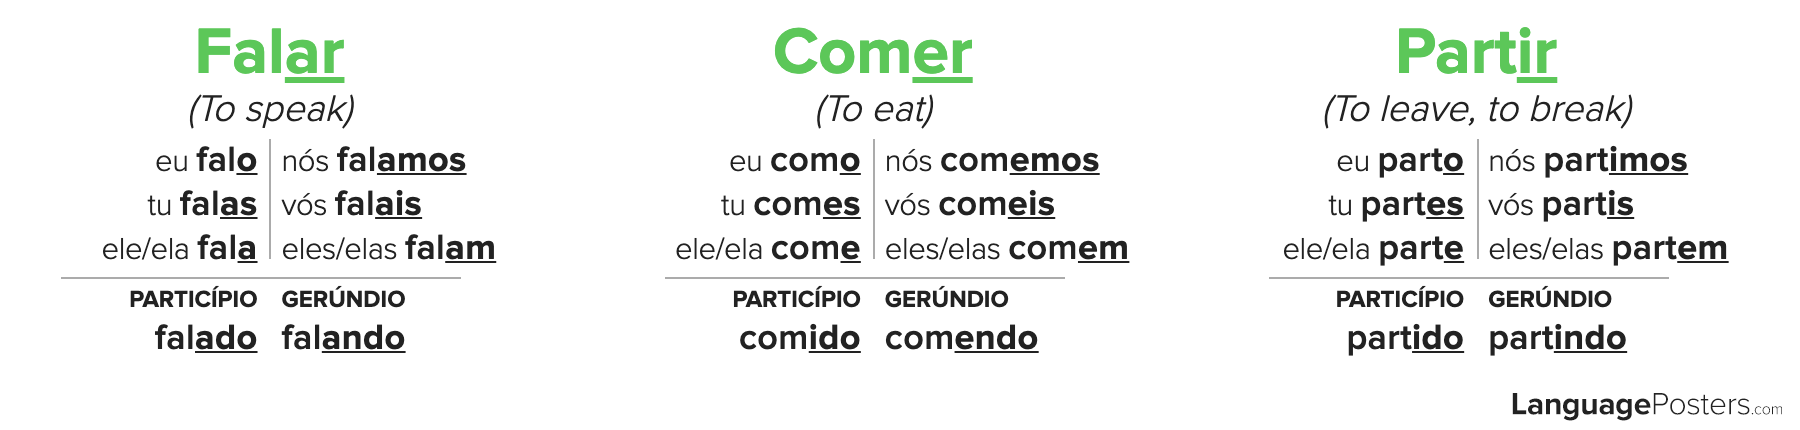 Portuguese Regular Verb Conjugation Chart